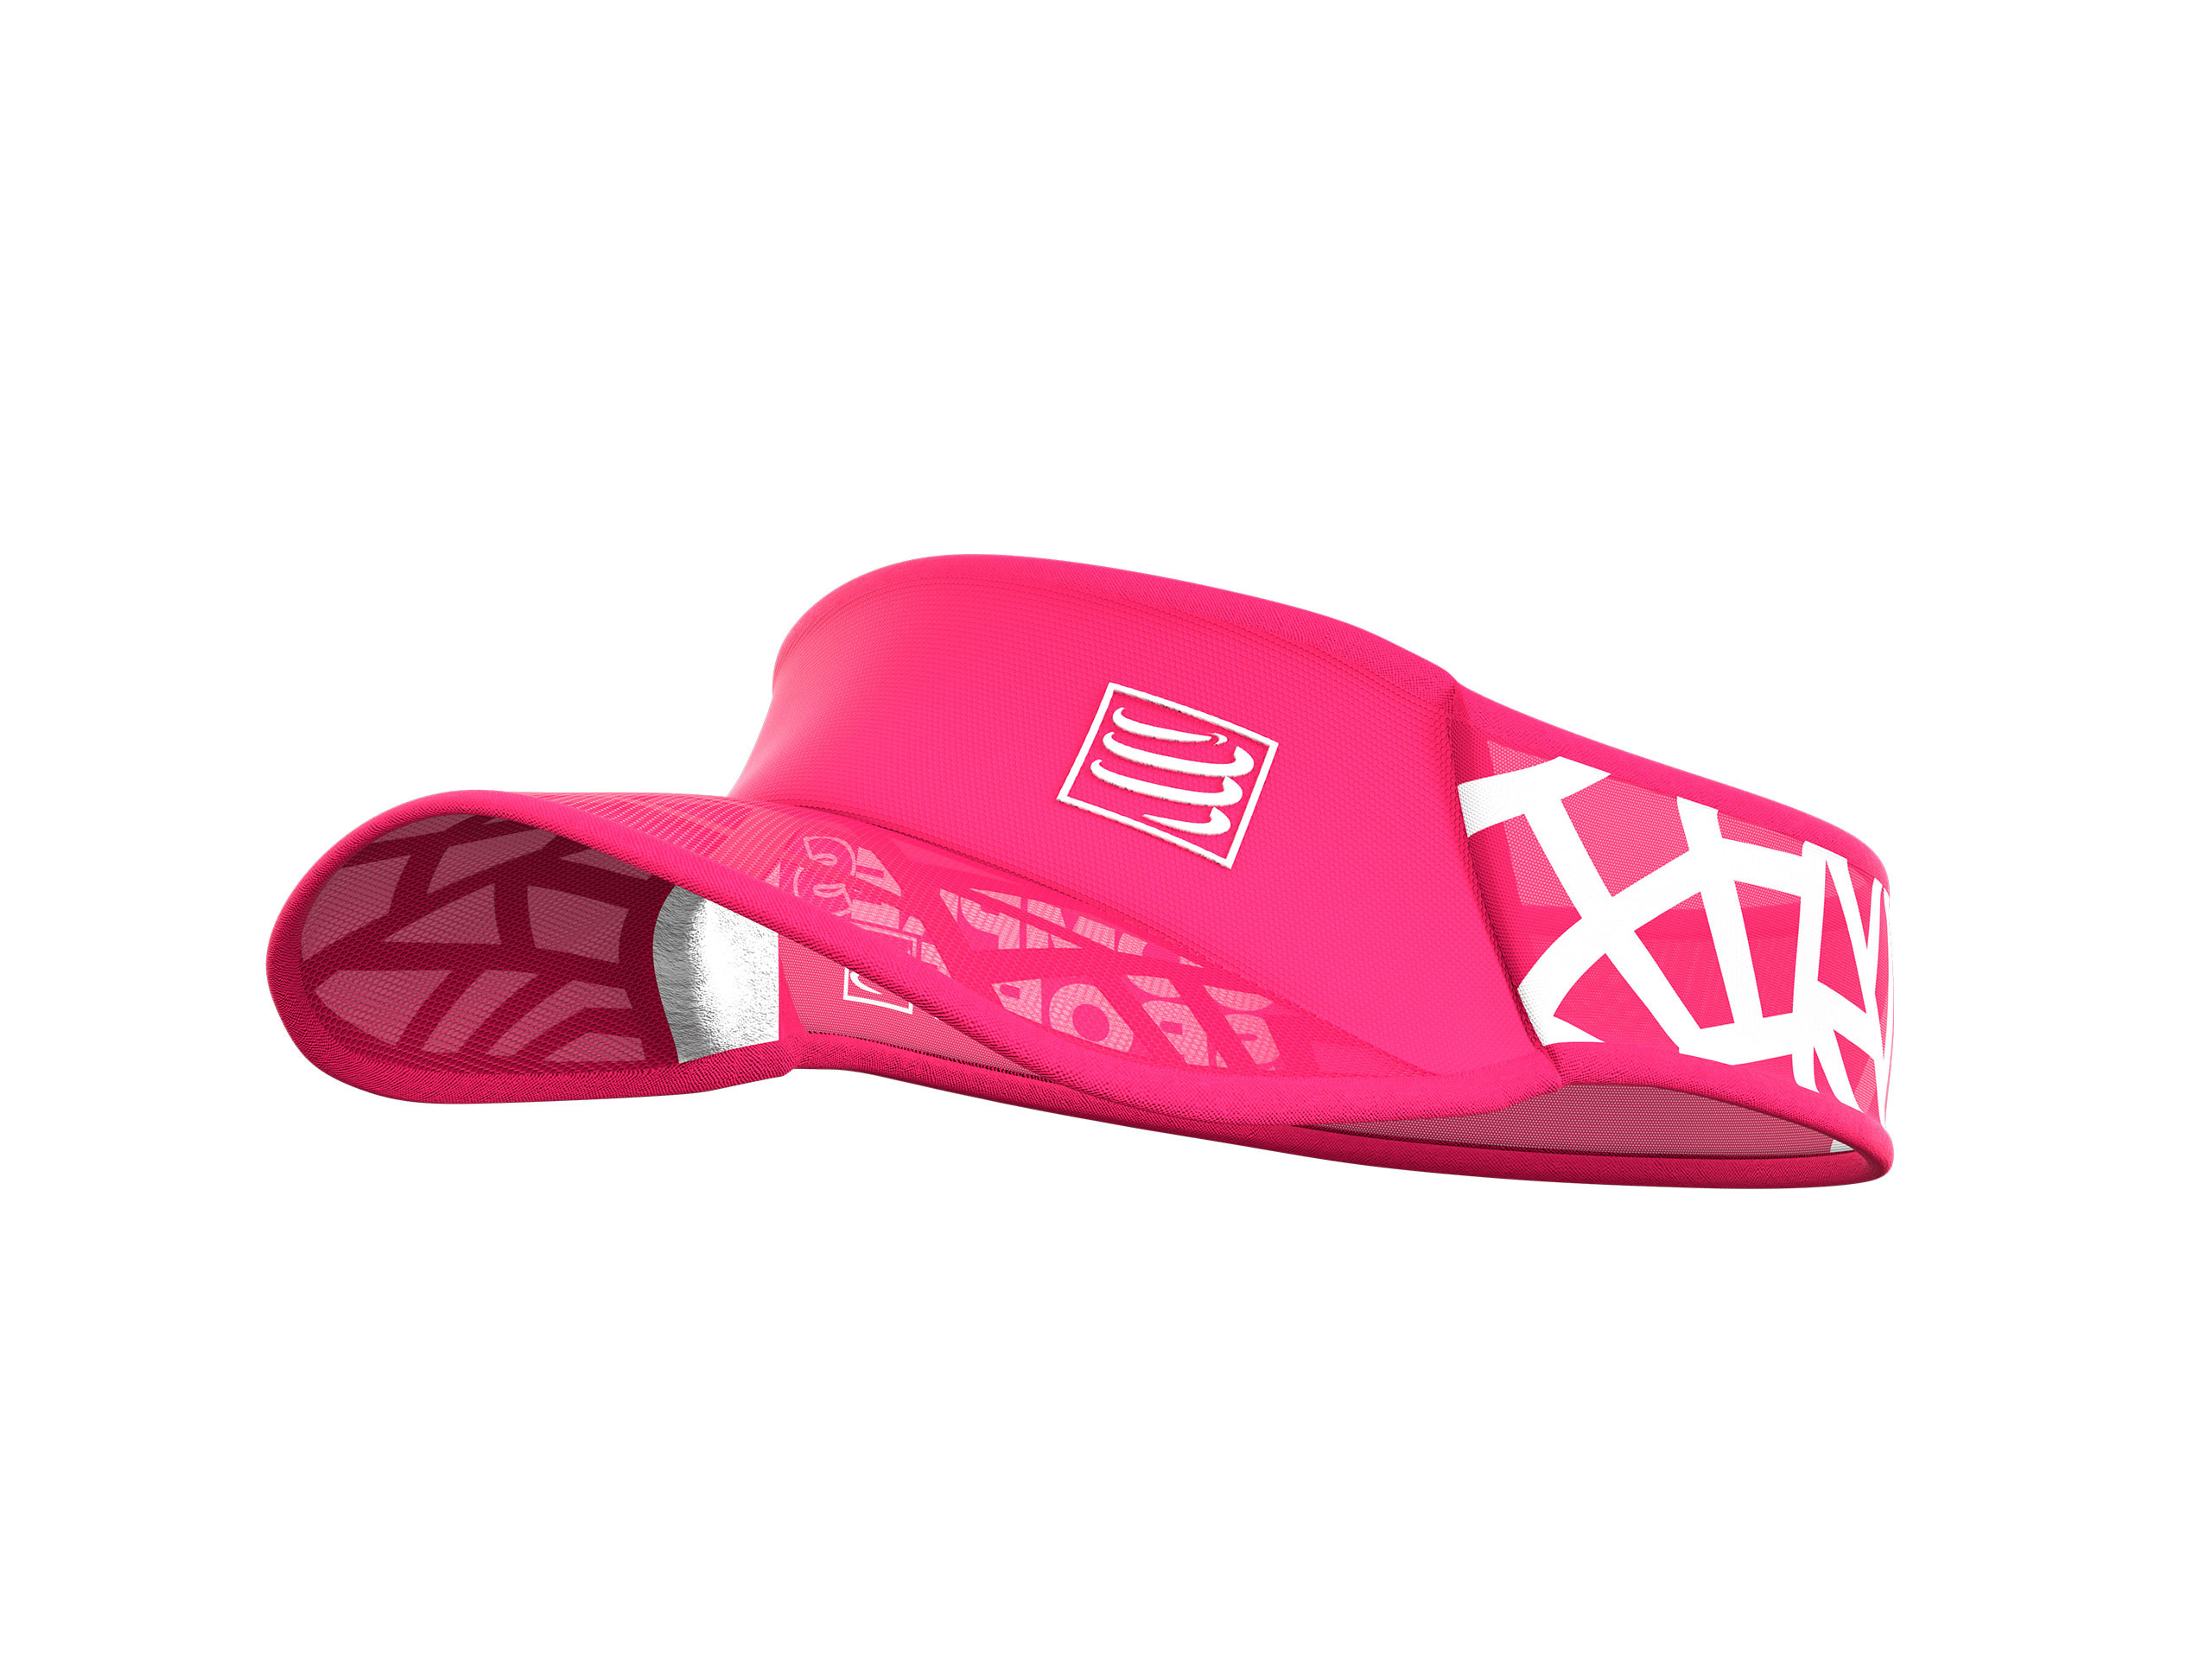 4314515bbdb8bc Pink visor l Spiderweb Ultralight Visor by Compressport